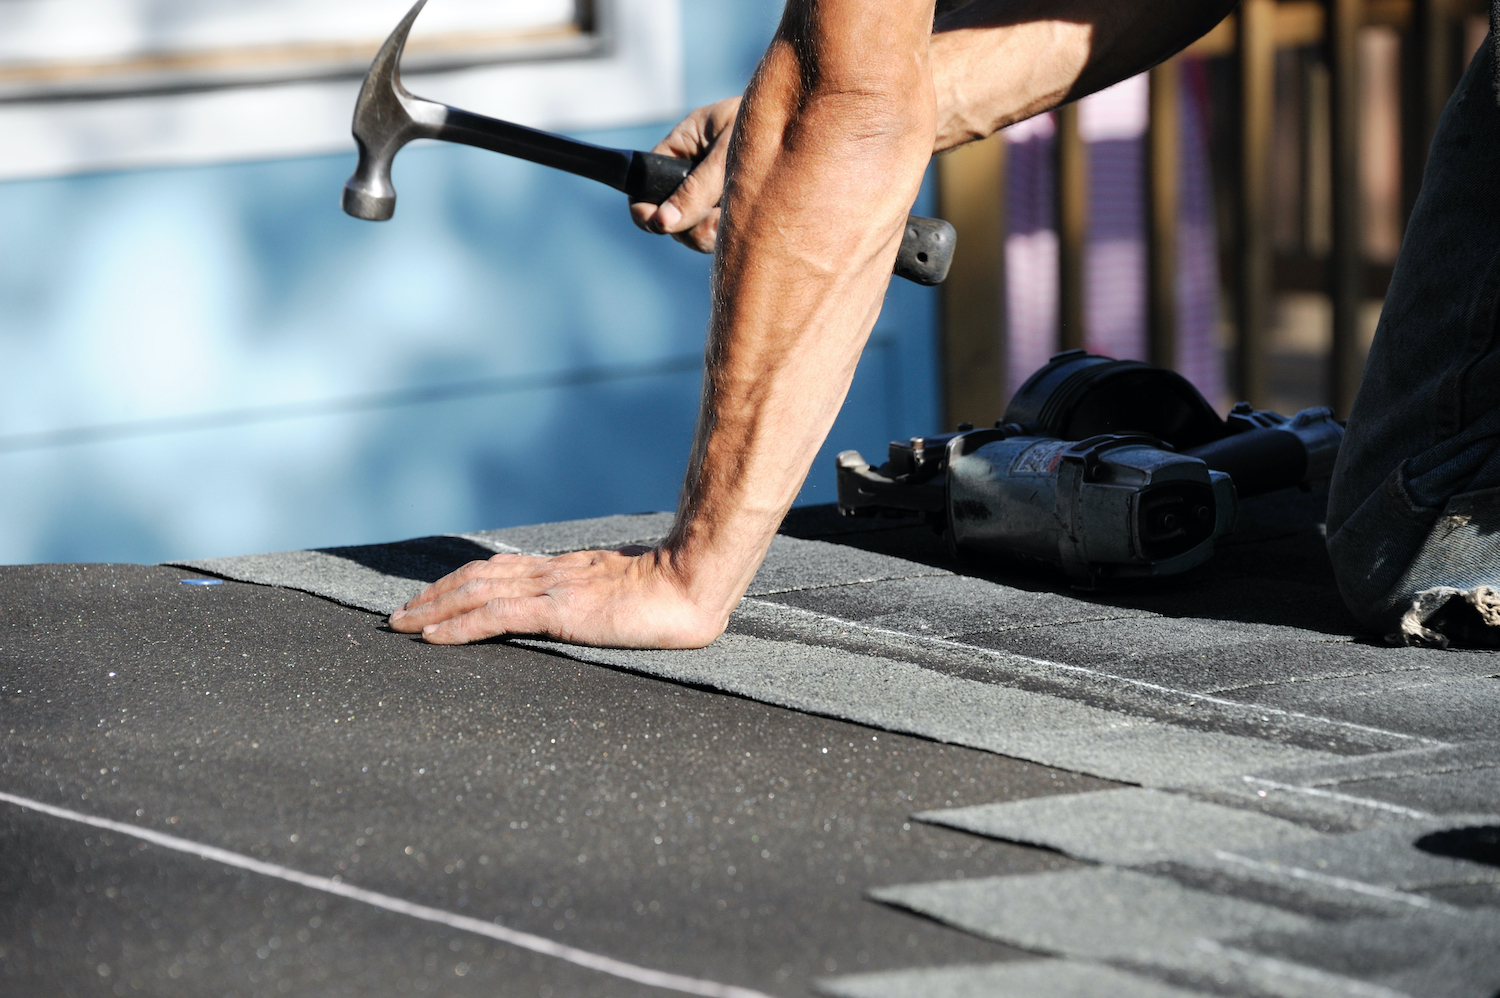 In Need of Tomball Roof Repair After a Rainstorm? Amstill Roofing, Houston's #1 Roofer, Will Help